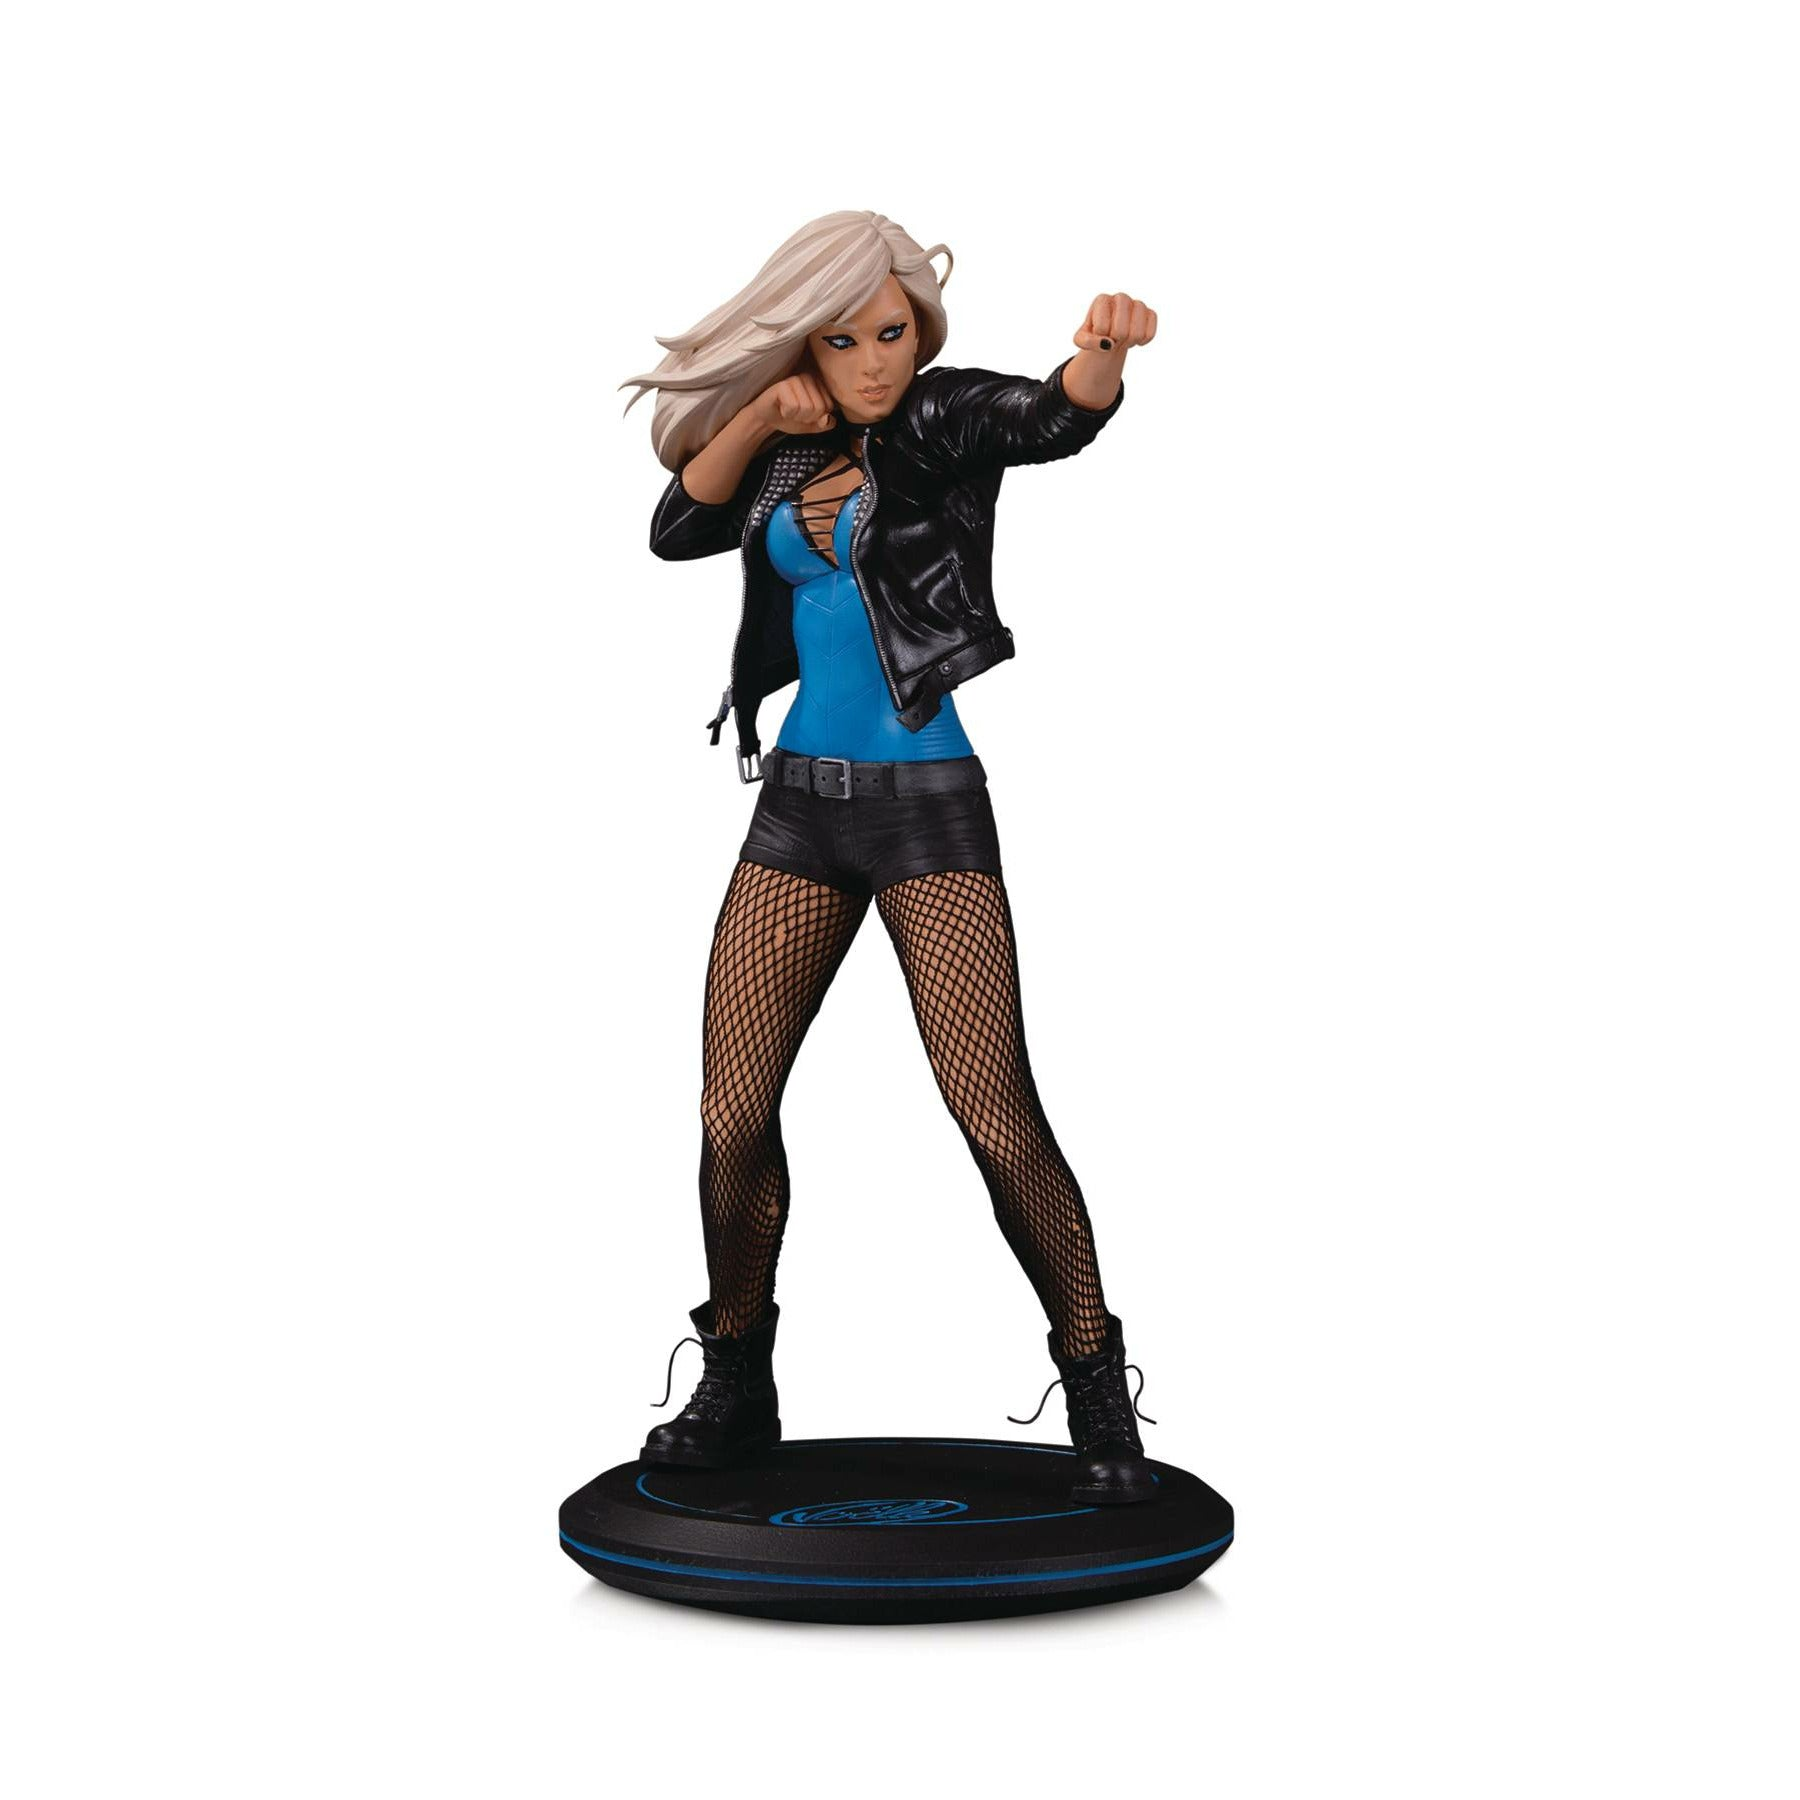 DC Cover Girls Black Canary 9 inch Statue By Joelle Jones